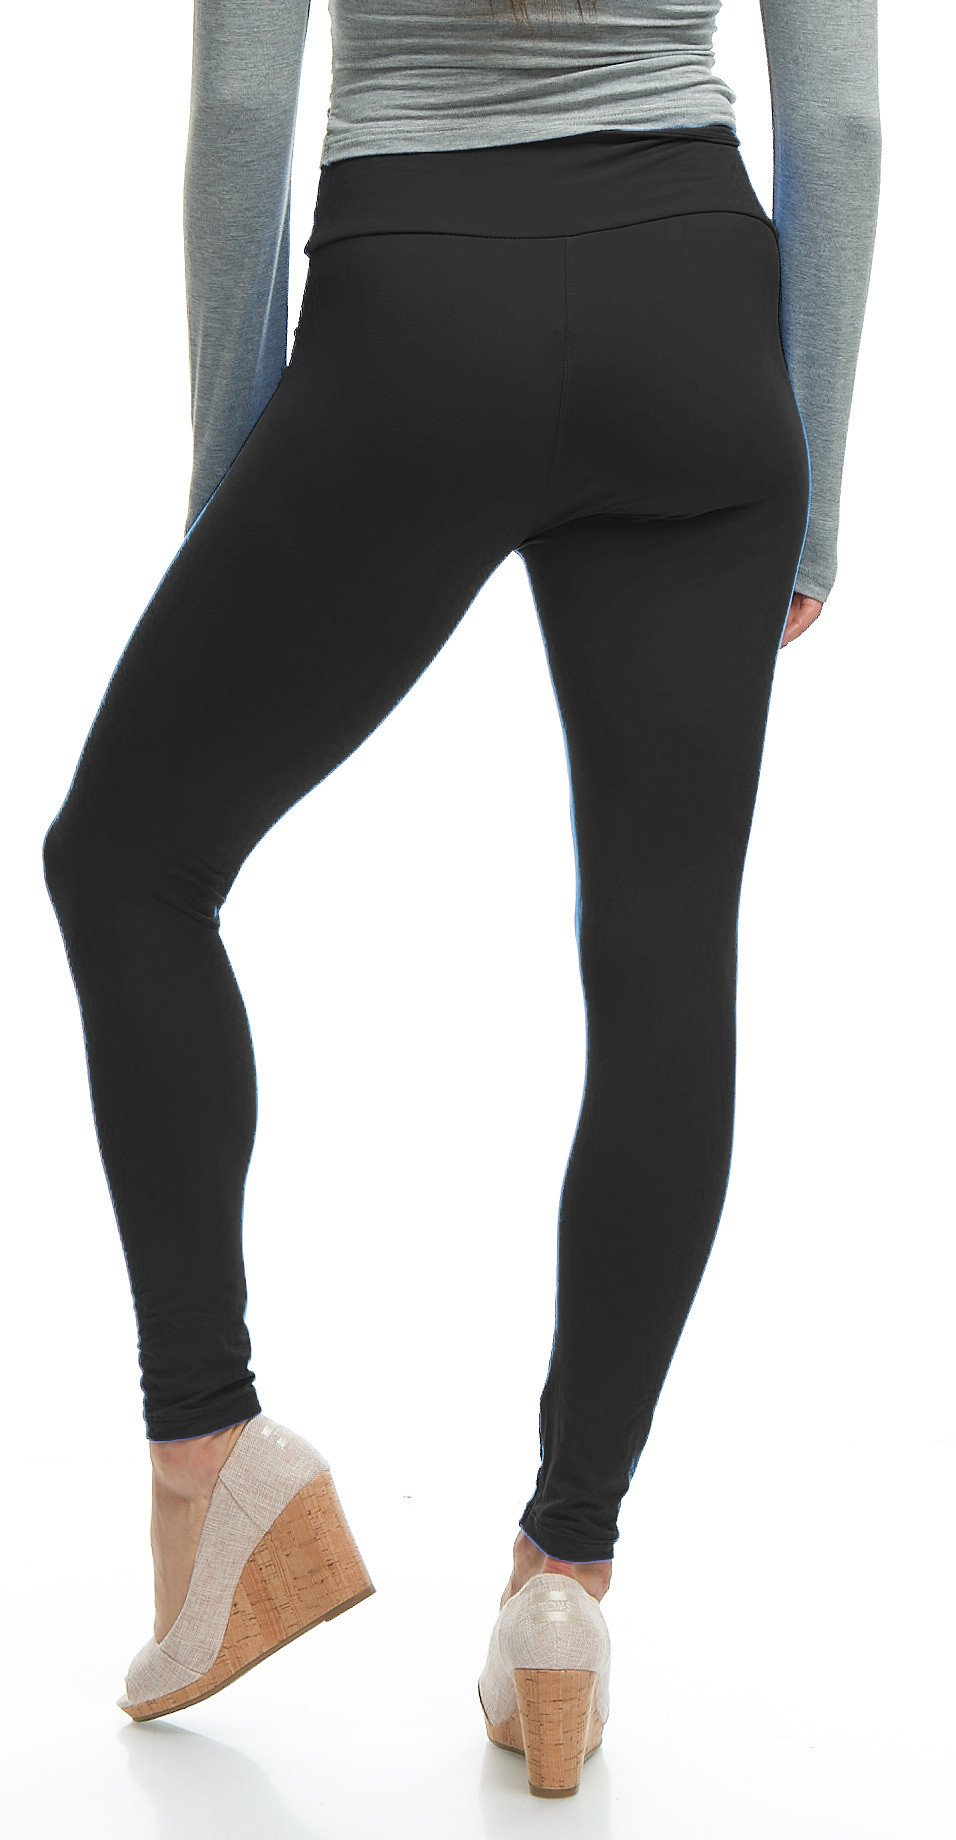 LMB Yoga Leggings Buttery Soft Material - Variety of Colors - Black by LMB (Image #8)